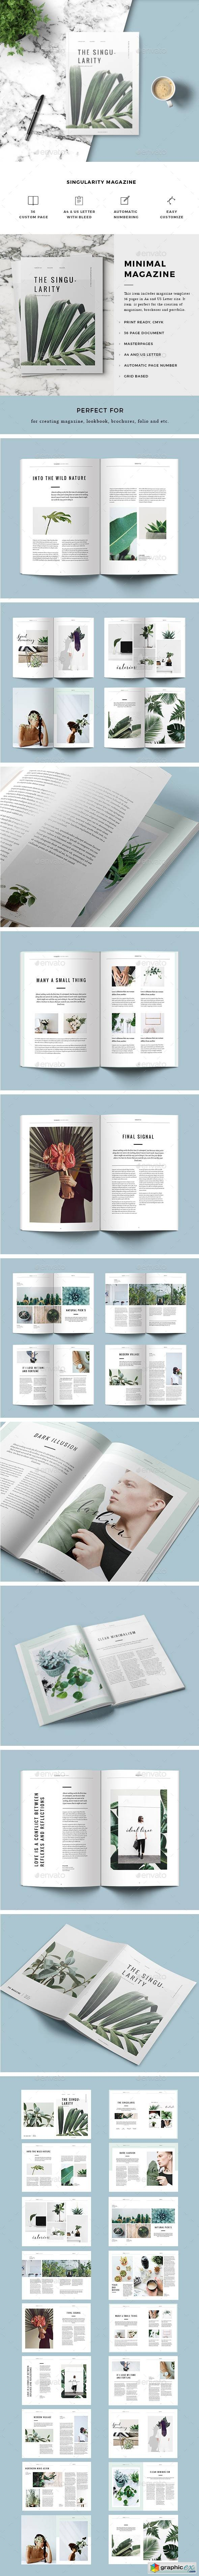 Brochure And Magazine - Free Download Vector Stock Image